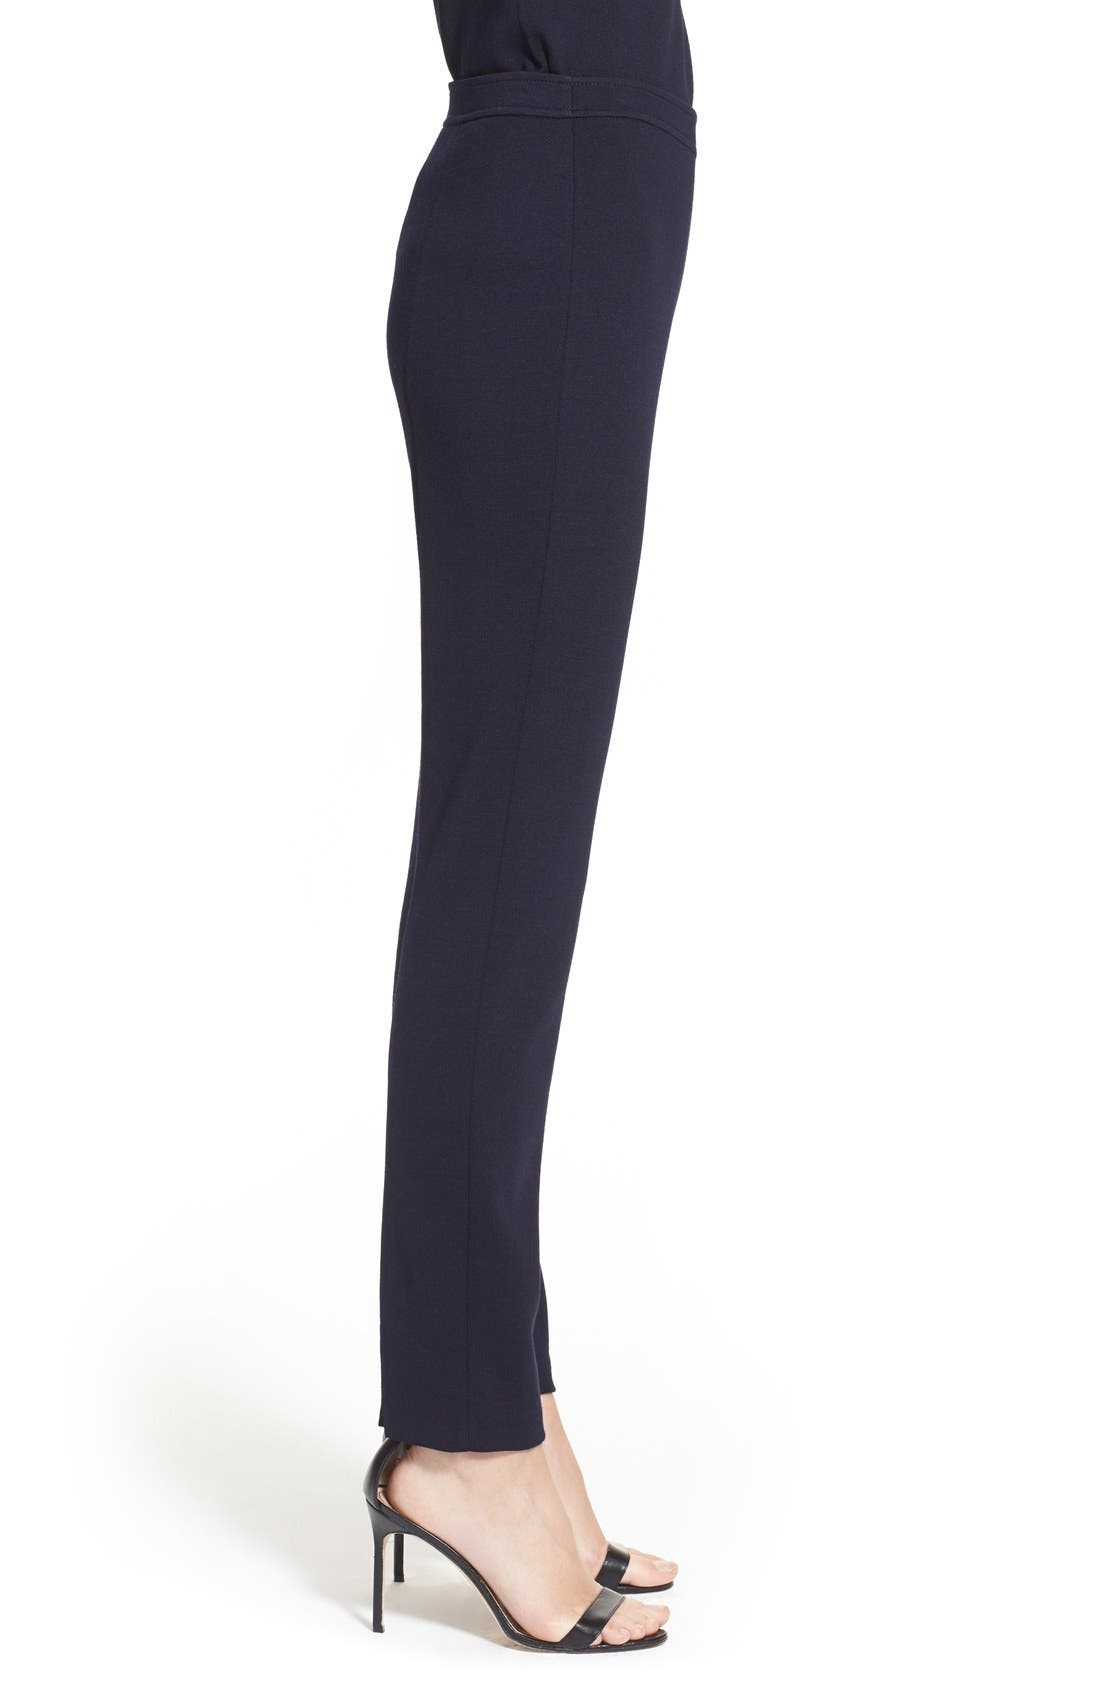 'Alexa' Stretch Milano Knit Ankle Pants,                             Alternate thumbnail 8, color,                             NAVY